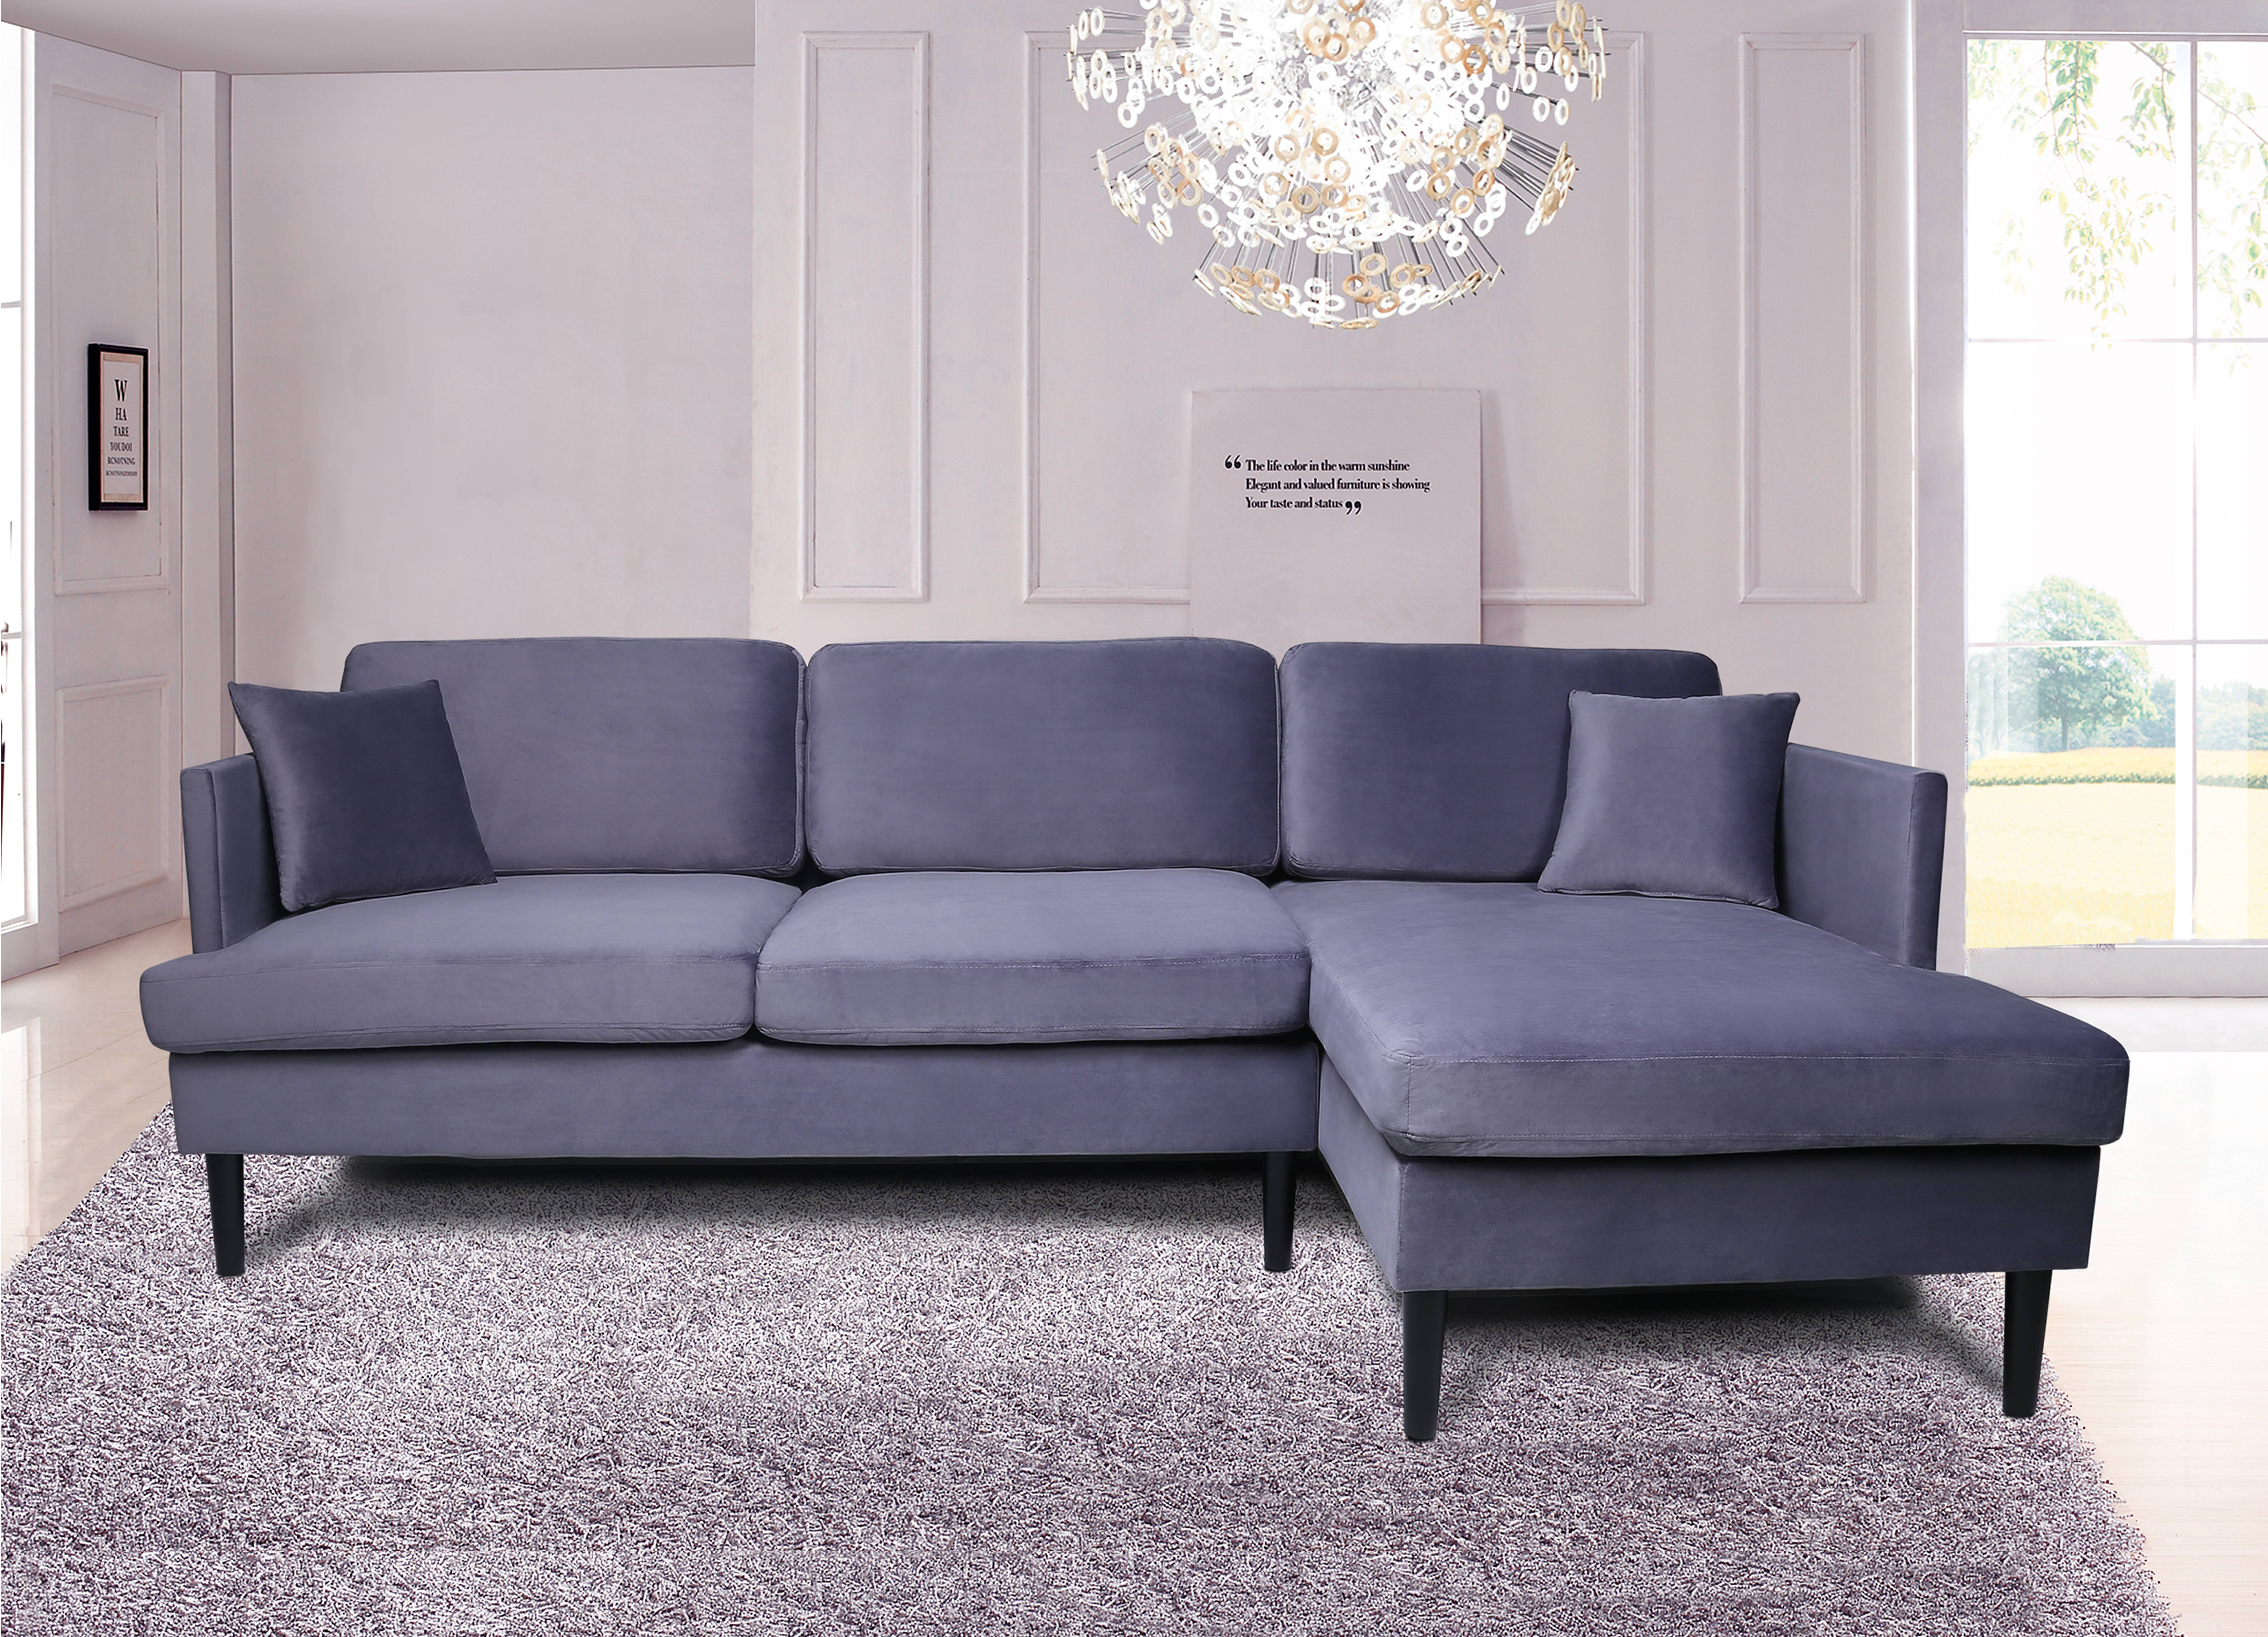 Segmart Mid Century Modern Sofa Bed With Chaise Lounge And Solid Frame 100 X54 3 X 35 4 Upholstery Sleeper Velvet Fabric Sectional Sofas With Solid Wood Frame 300lbs Grey S5809 Walmart Com